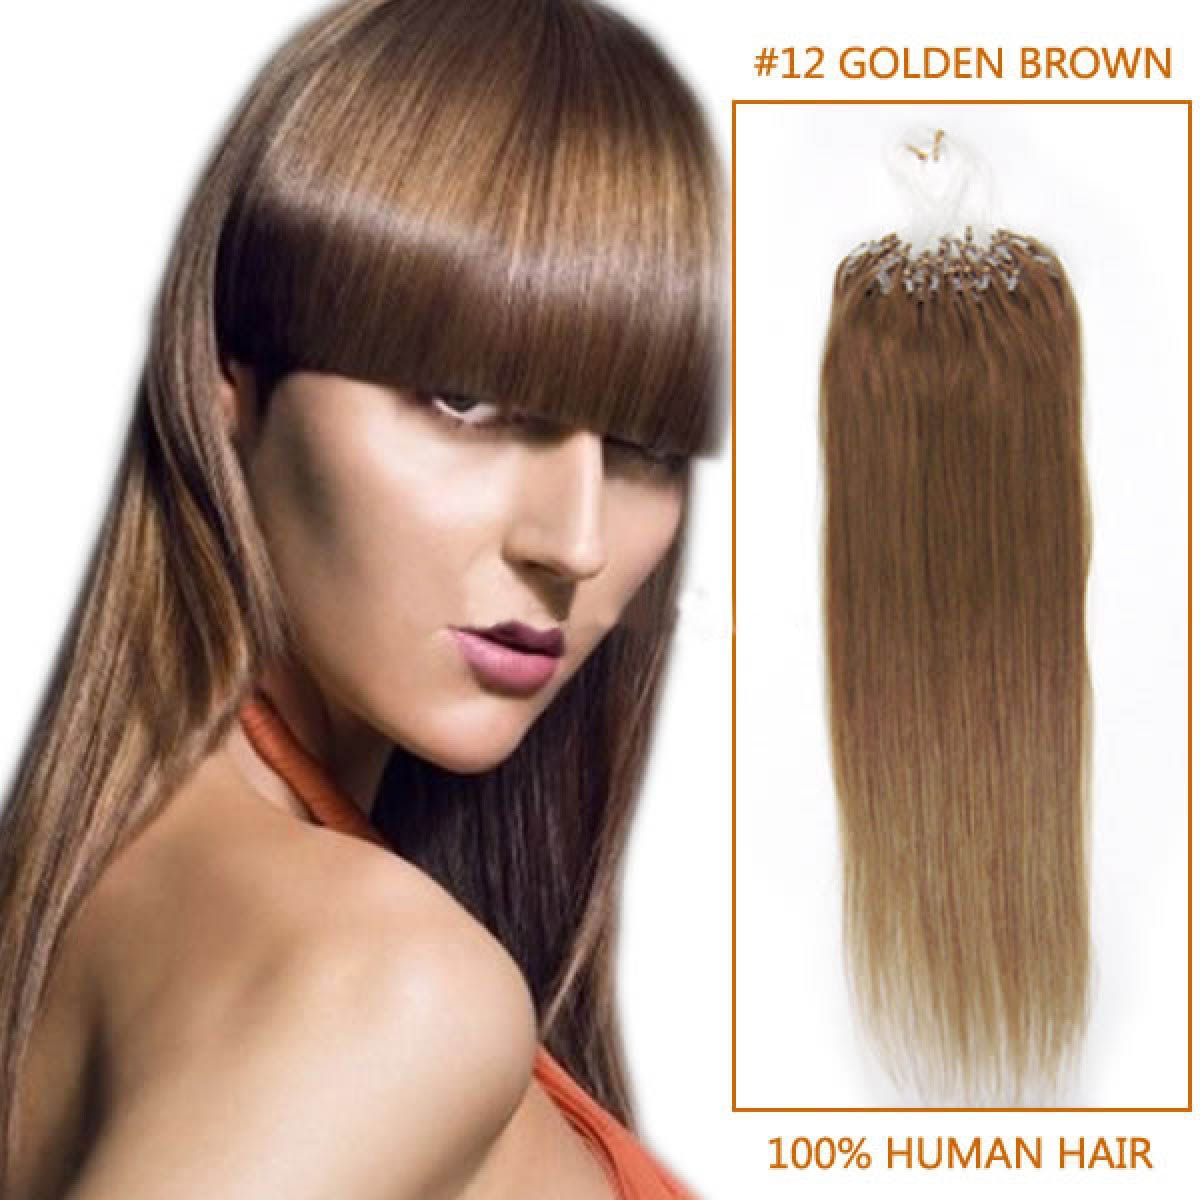 16 Inch #12 Golden Brown Micro Loop Human Hair Extensions 100S